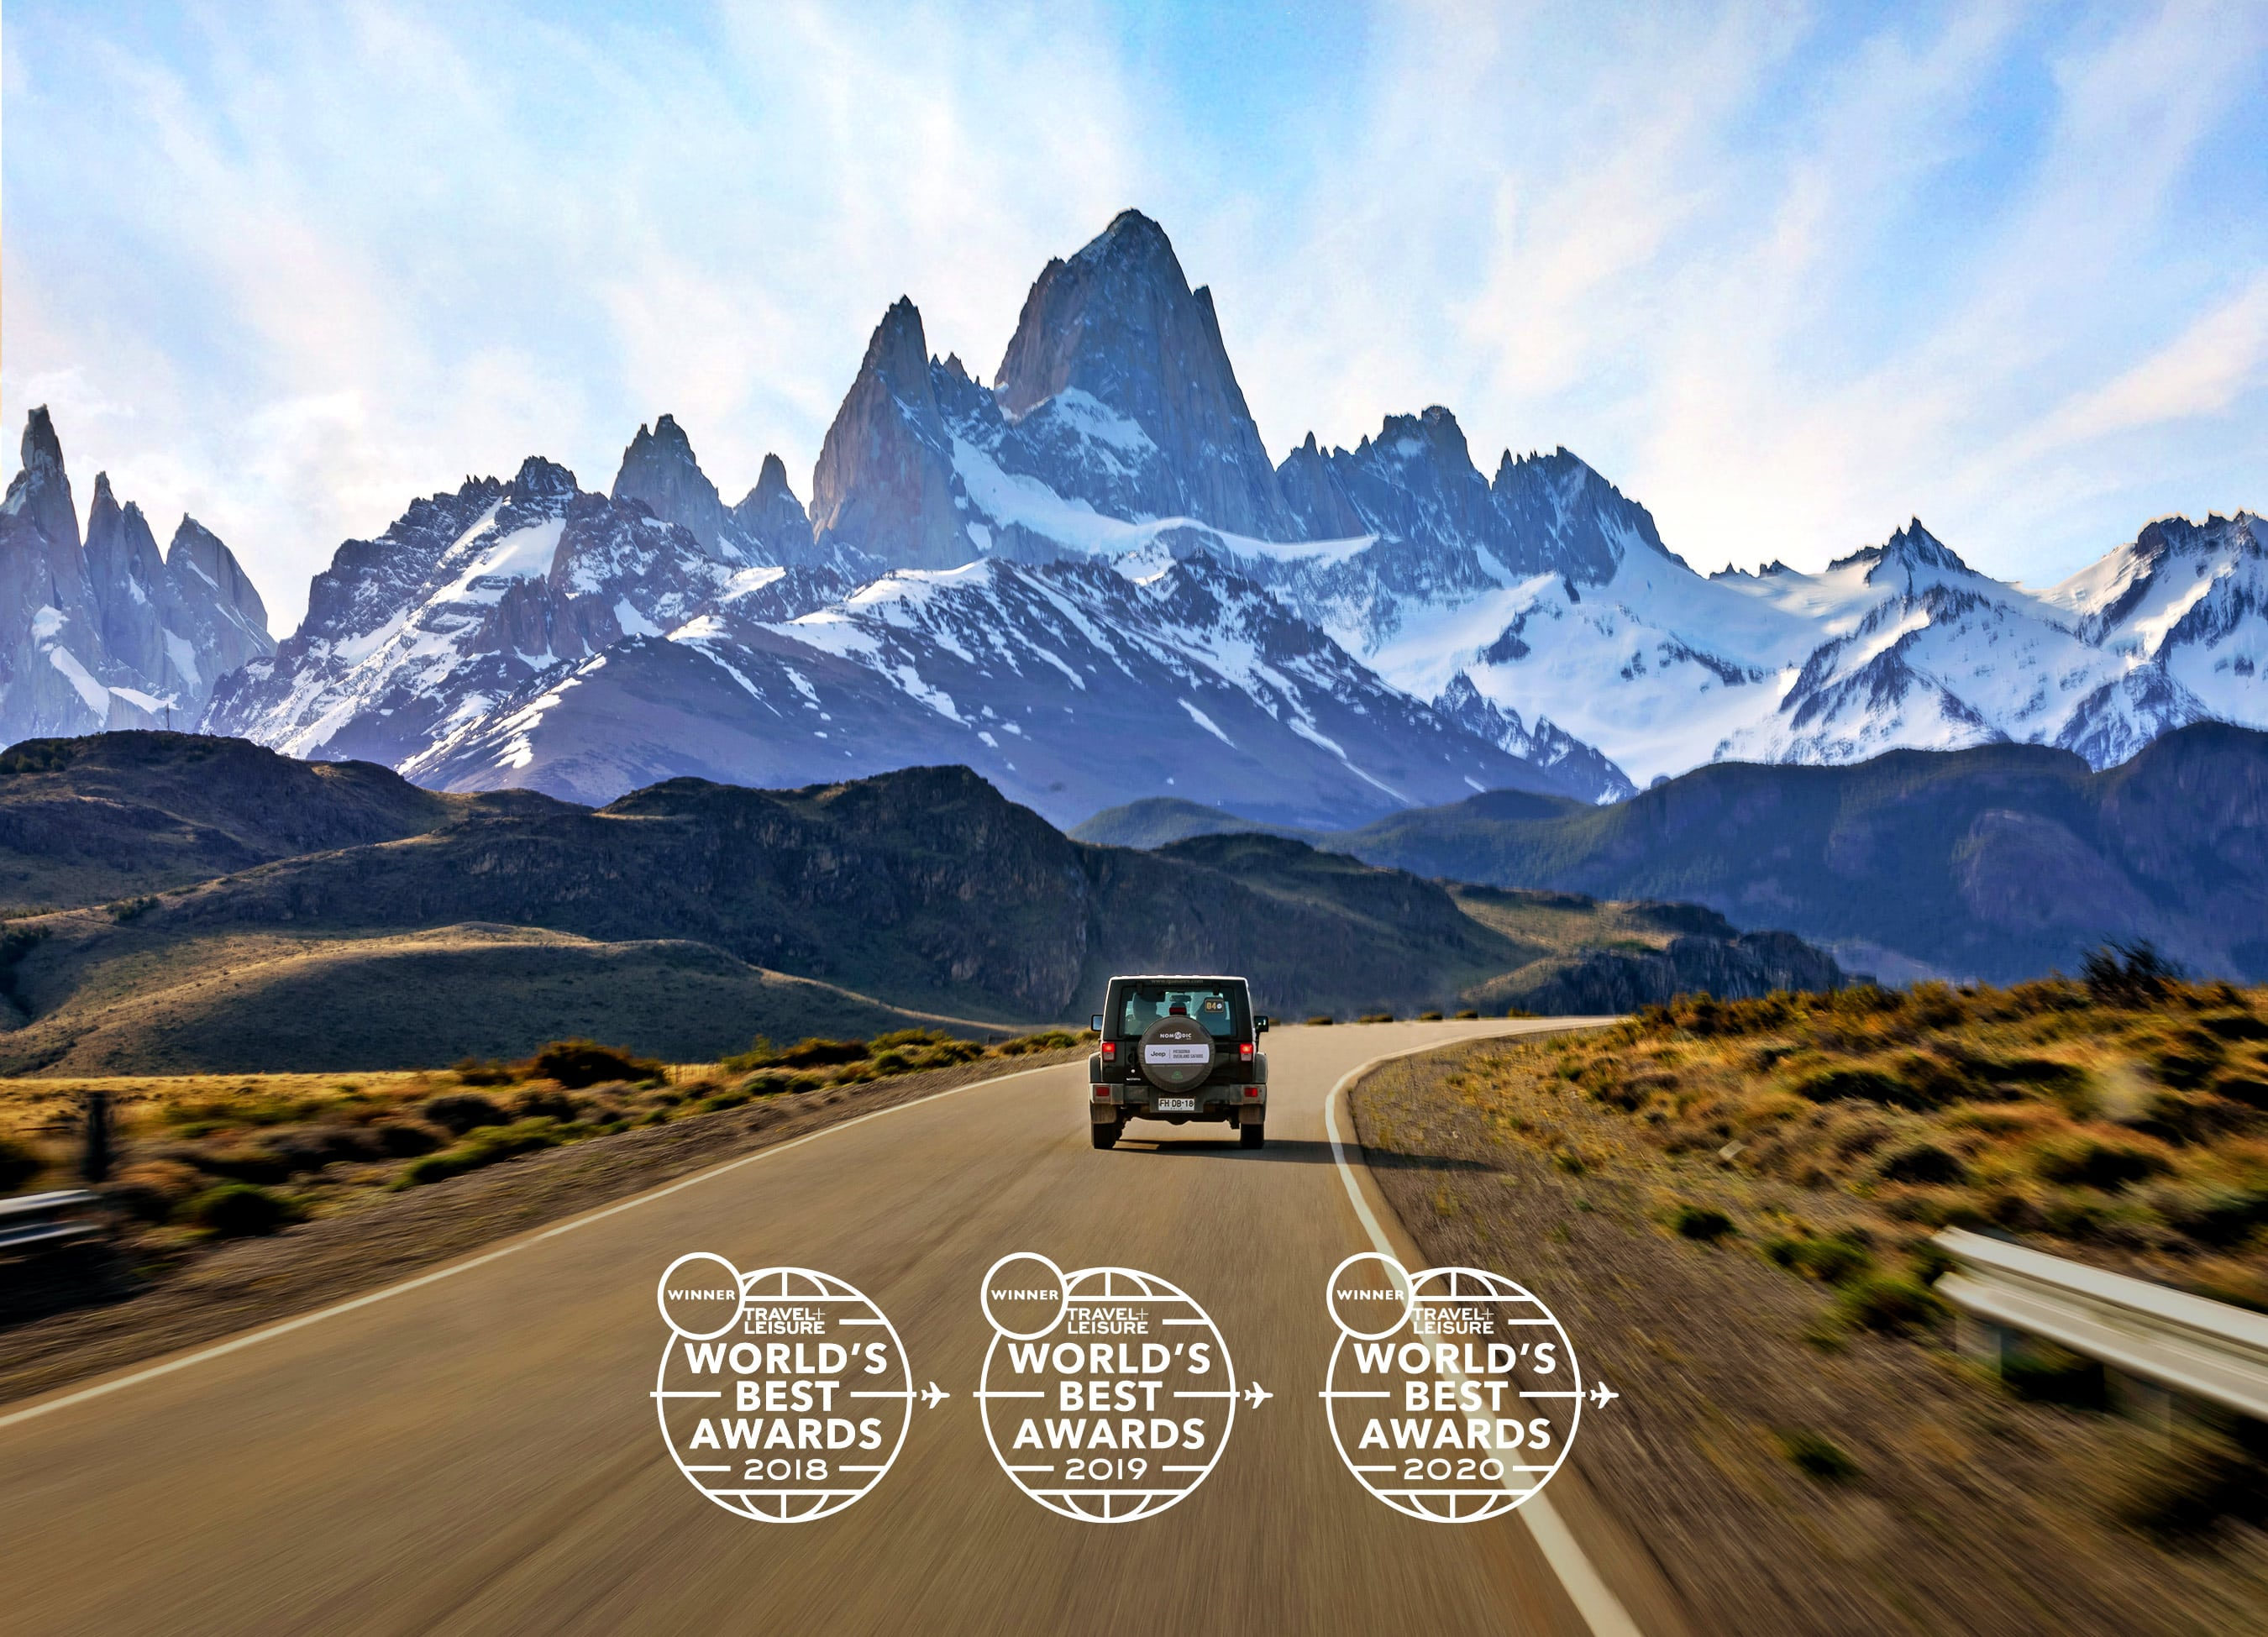 Patagonia is a year-round destination